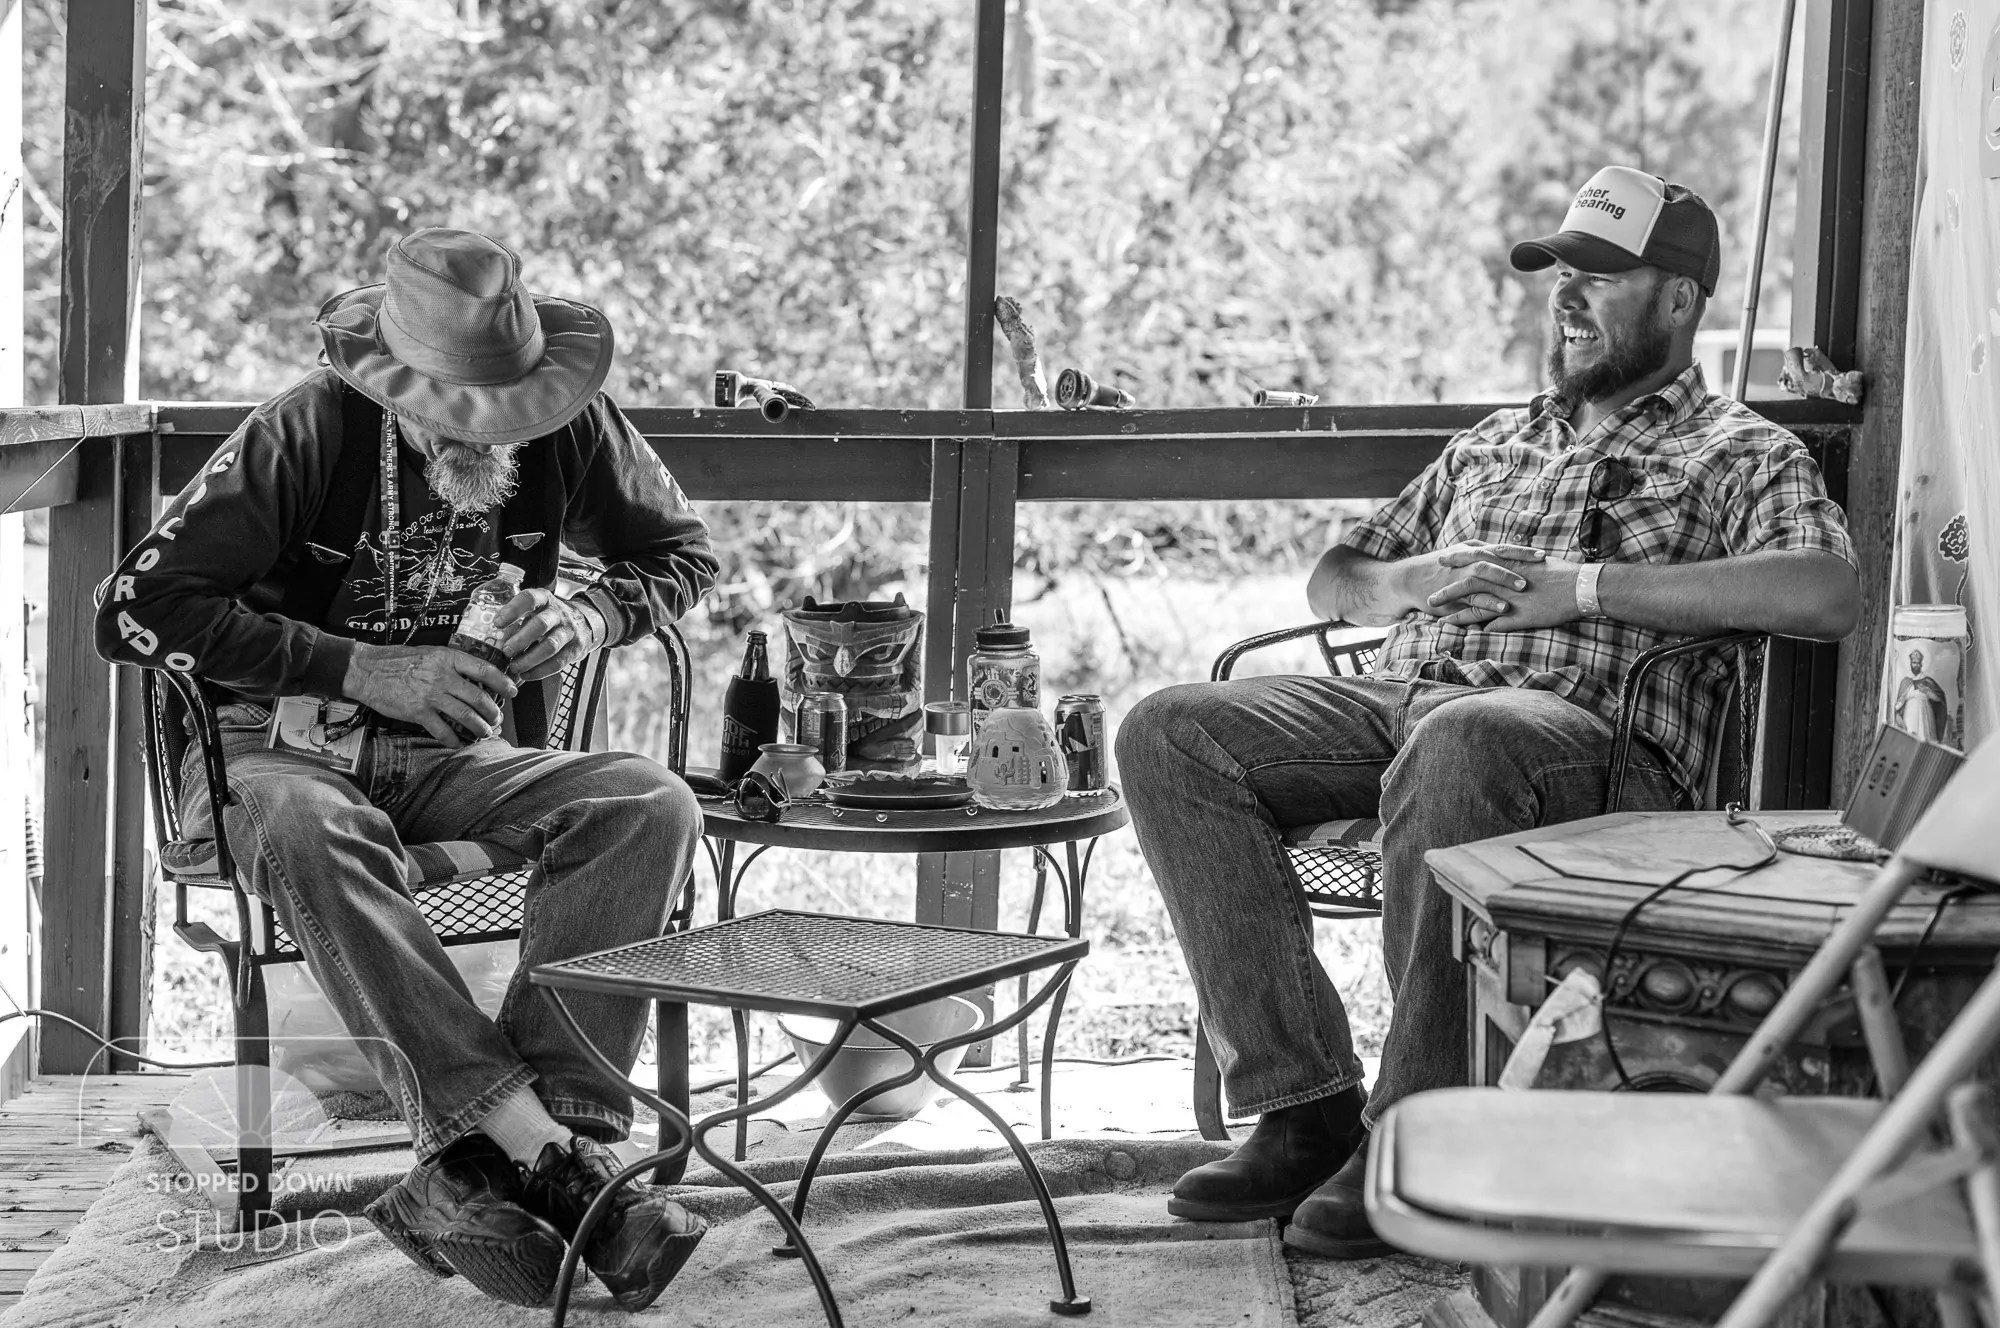 Road to Rich's: Catching up on the porch